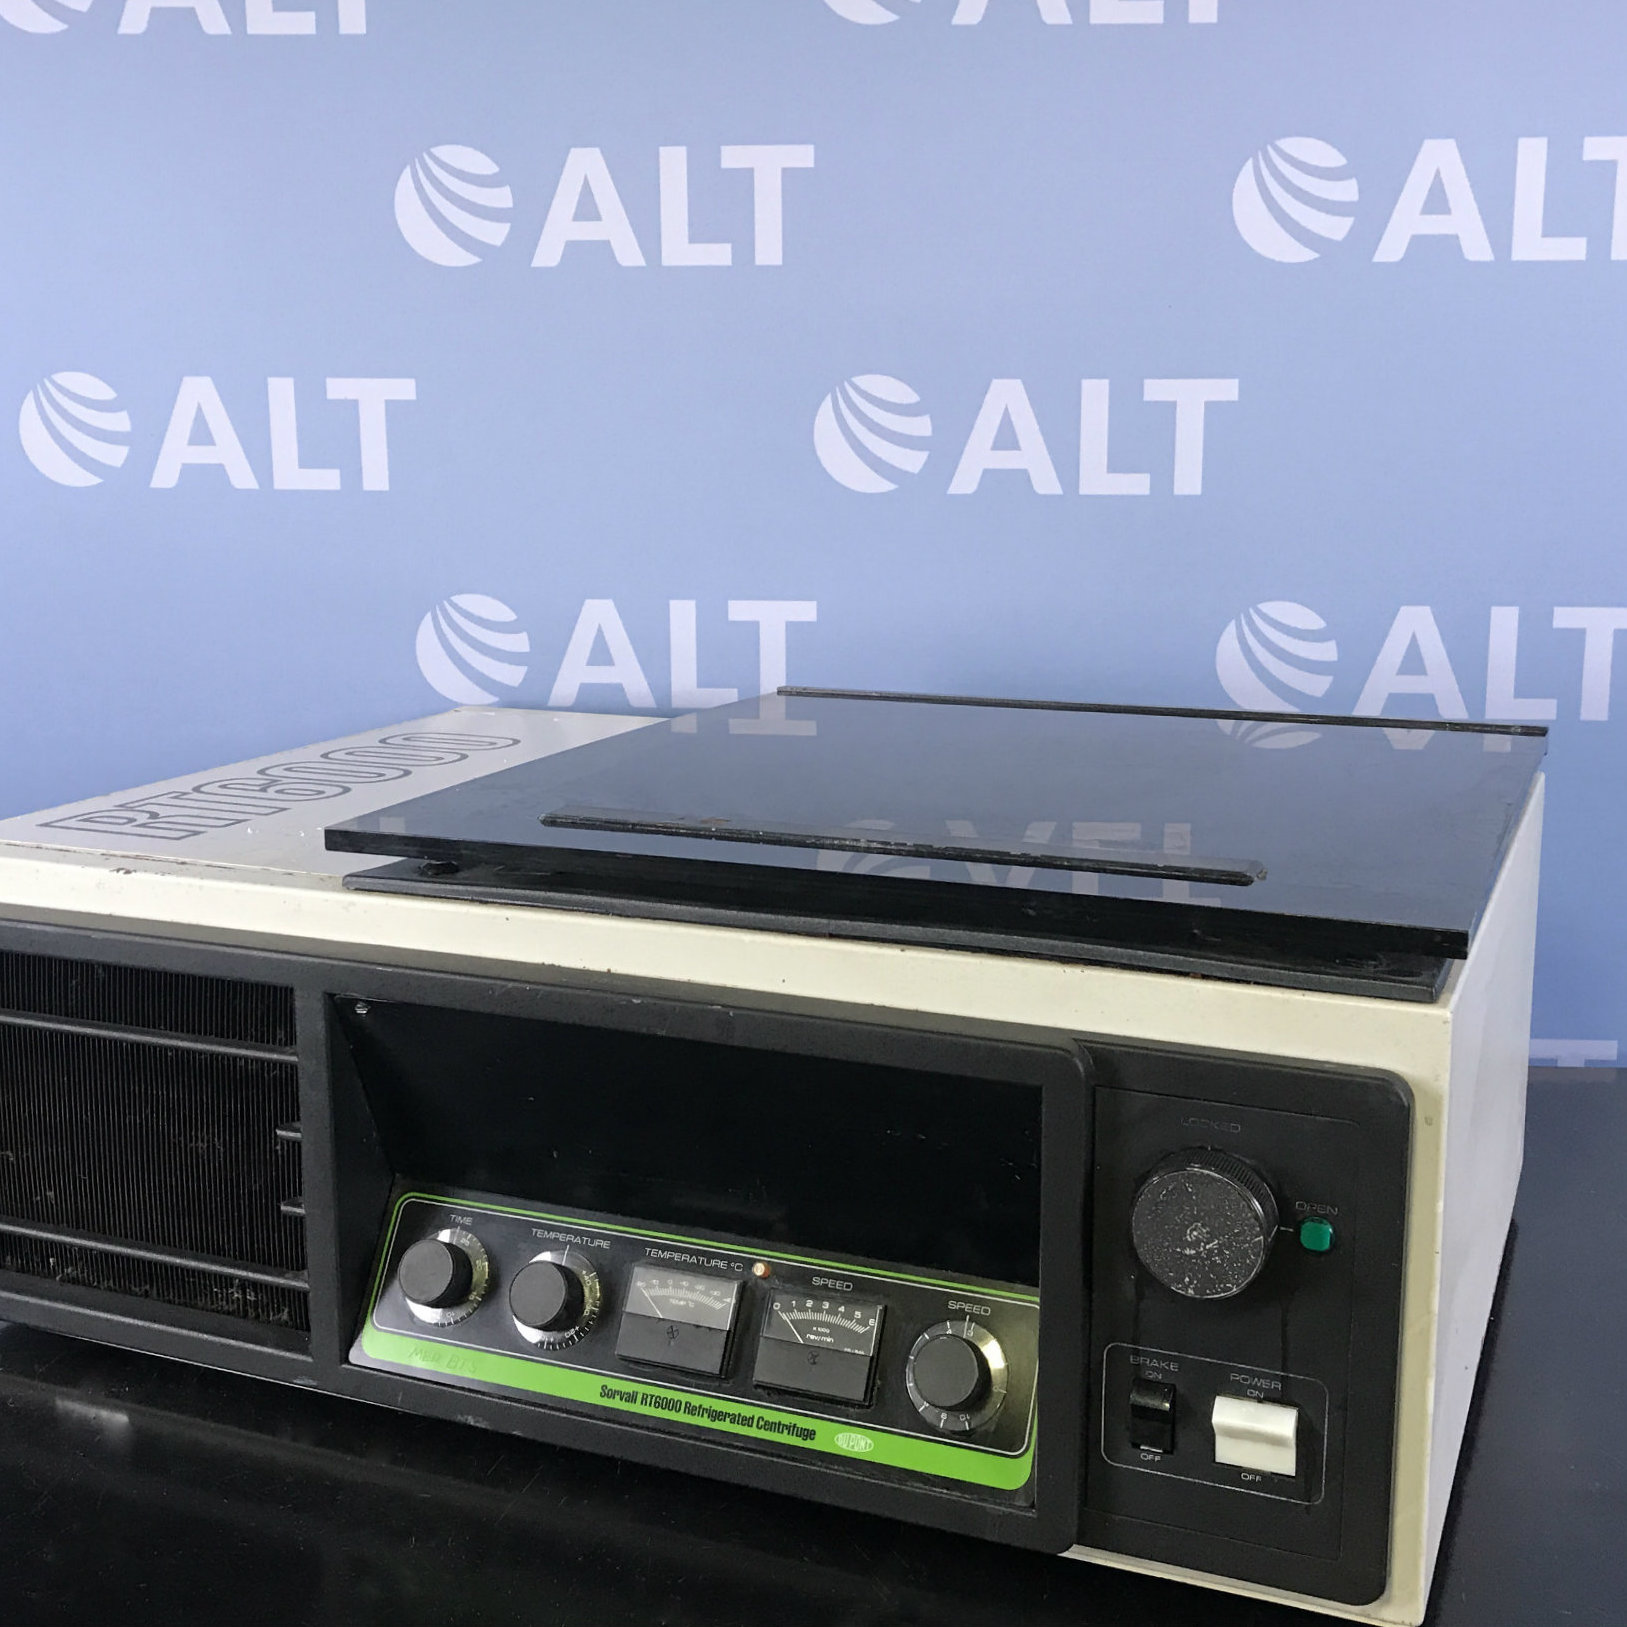 Sorvall RT6000 Refrigerated Centrifuge Image